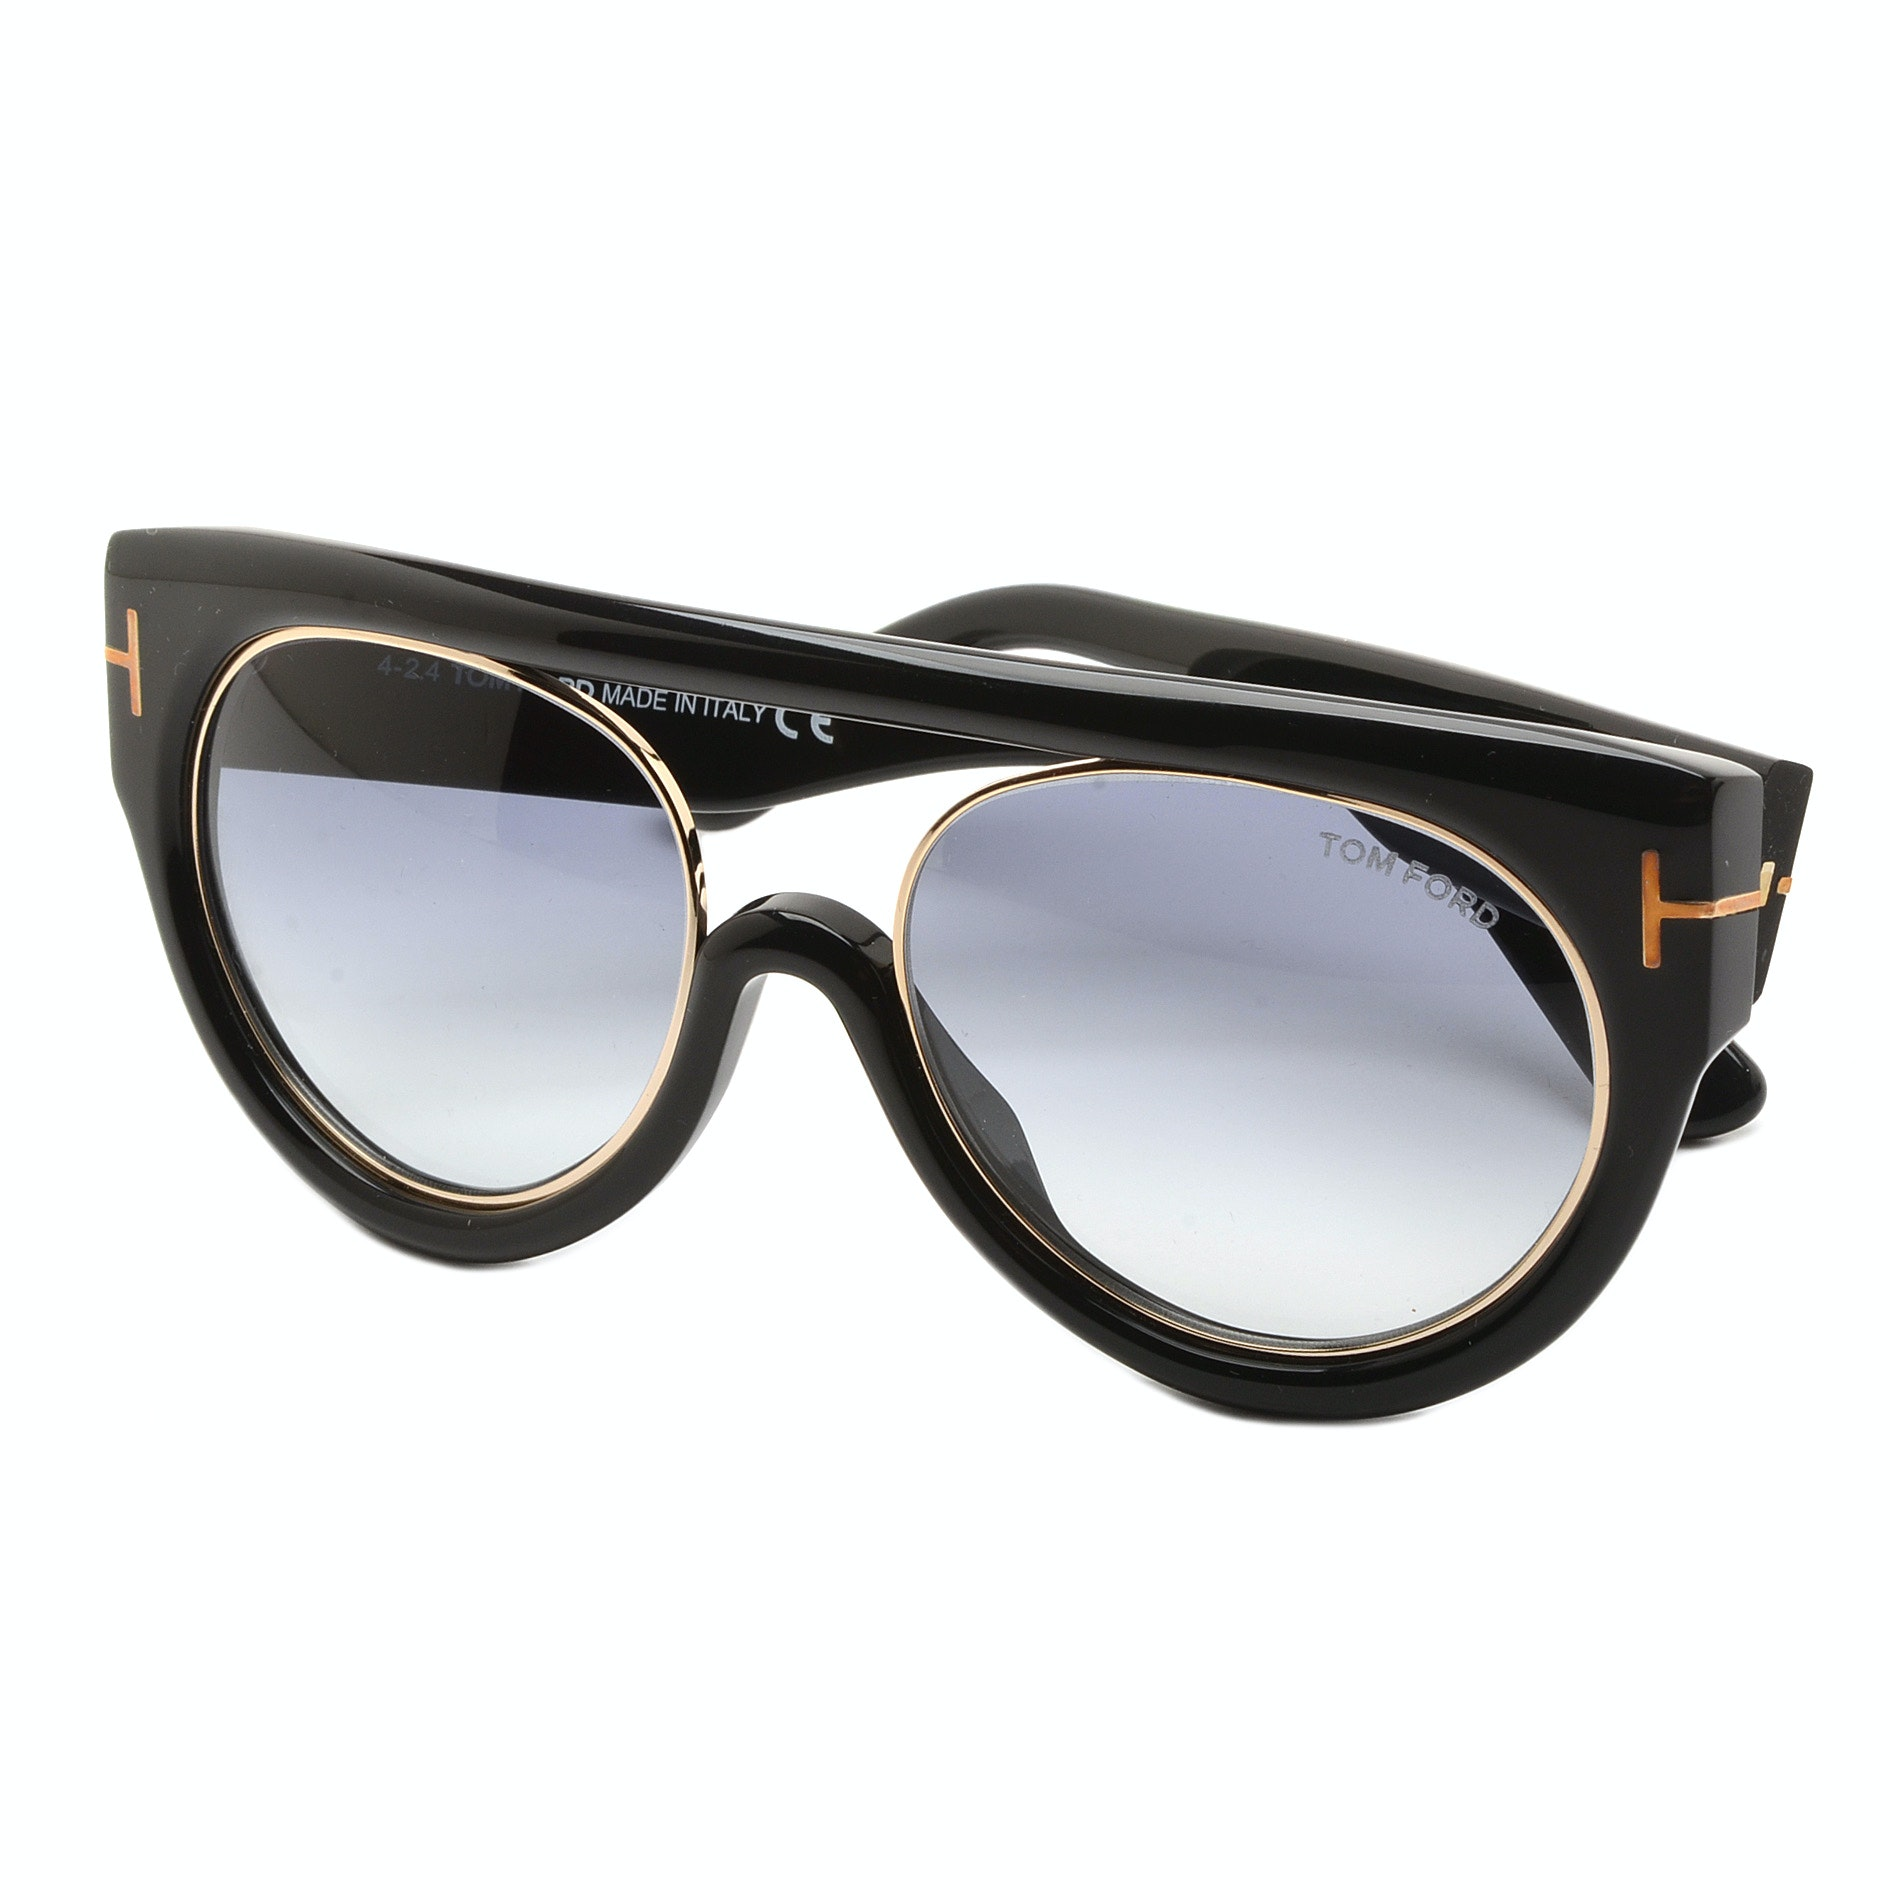 Tom Ford Alana Sunglasses